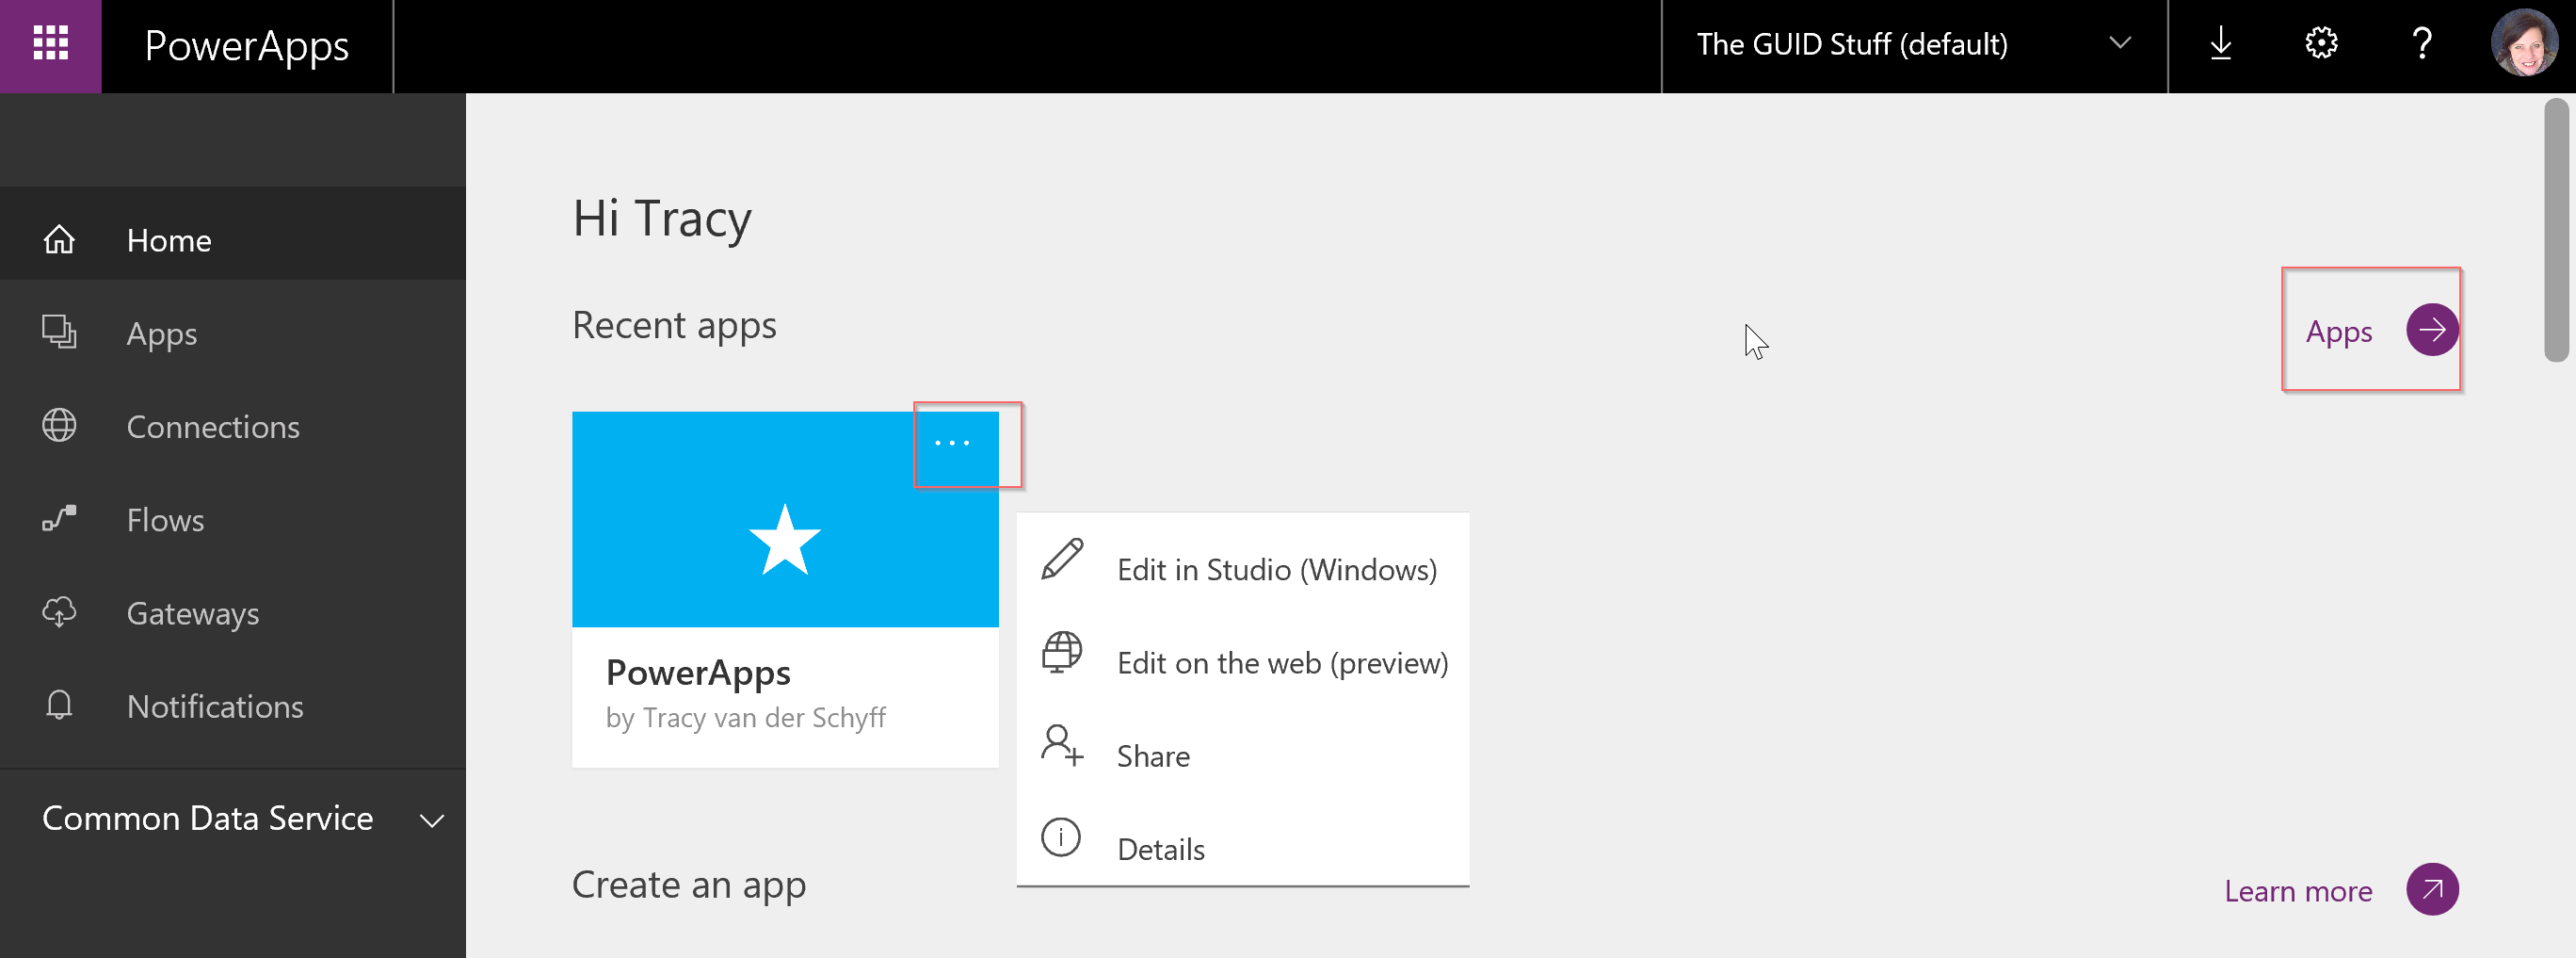 Powerapps Notification Connection Name